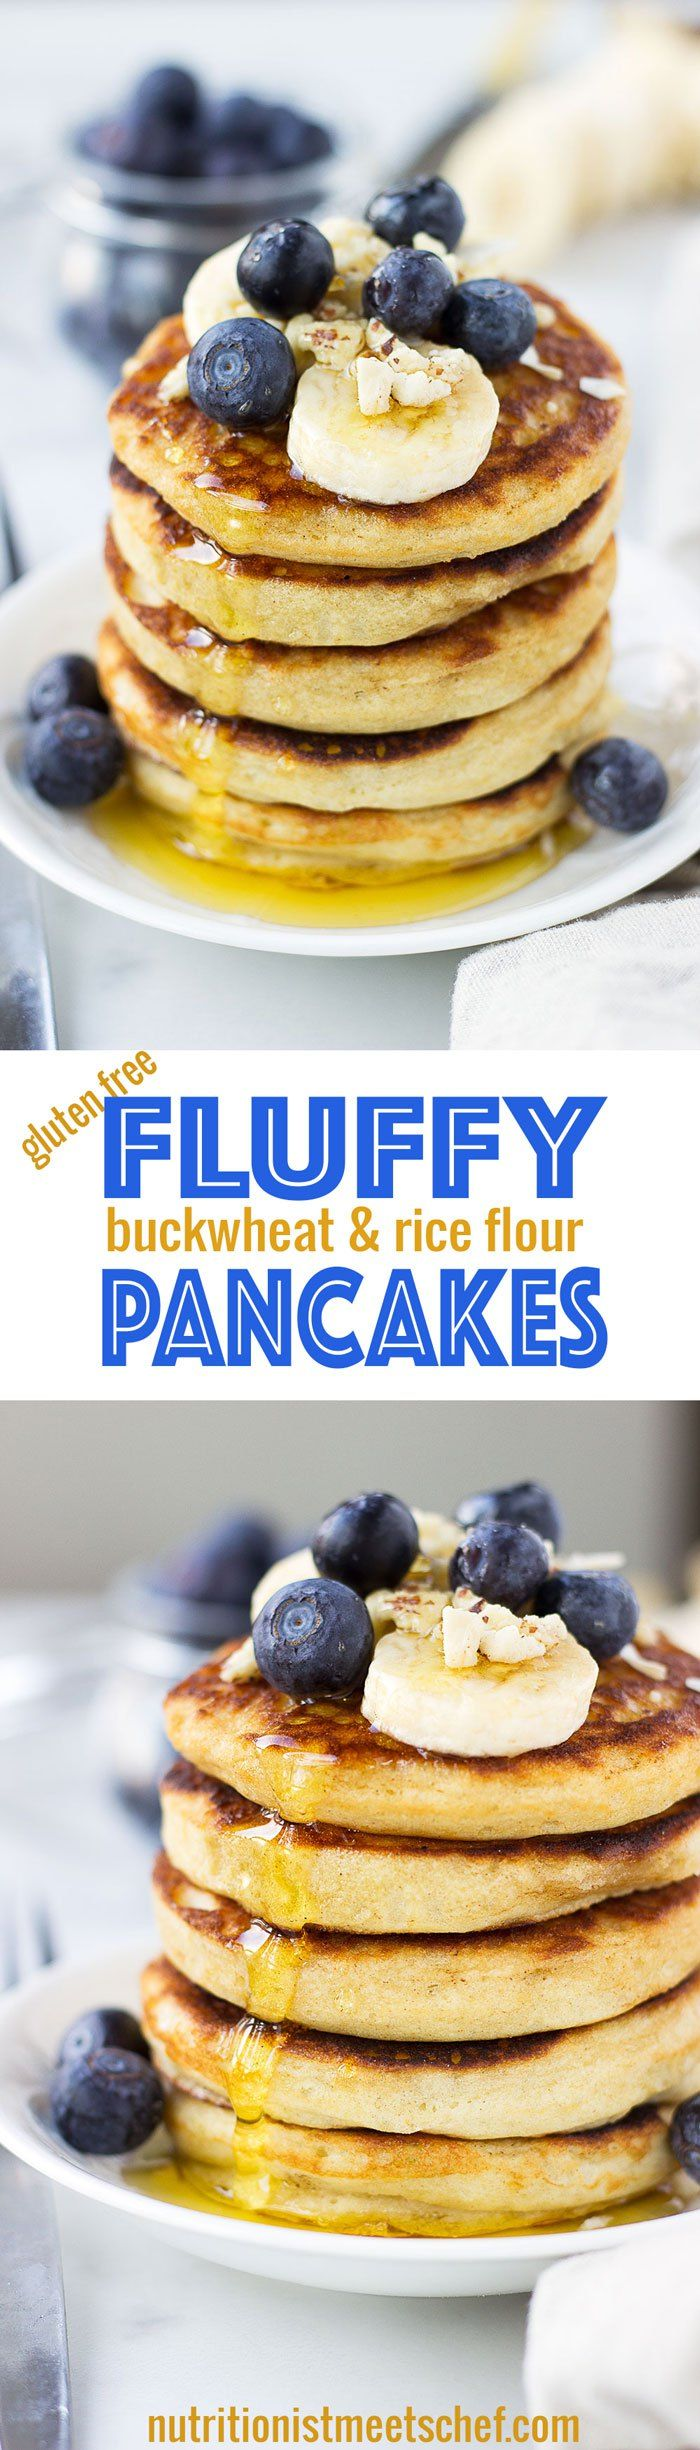 Fluffy Buckwheat and Rice Flour Pancakes! Naturally gluten free, these pancakes only require 7 ingredients and come together in about 20 minutes! Get the recipe at nutritionistmeetschef.com